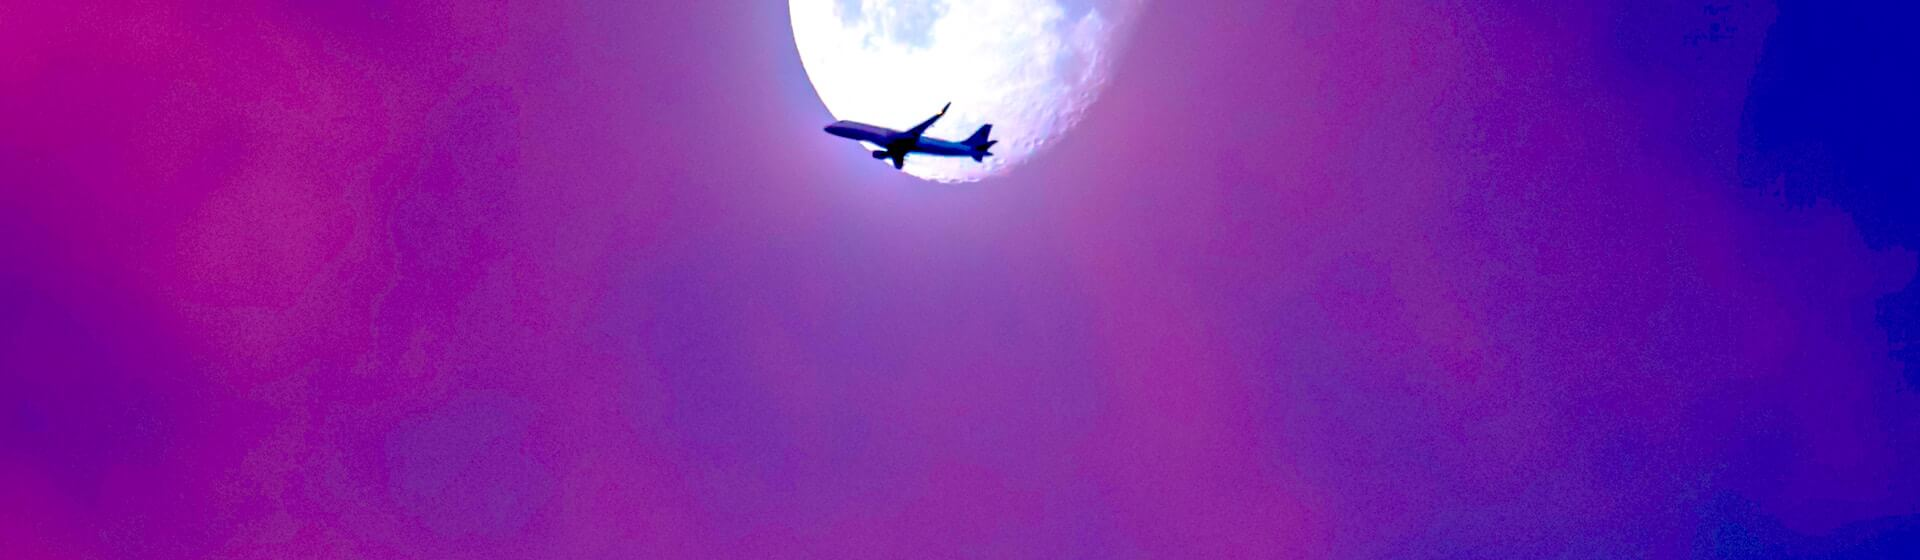 Plane passing by the moon